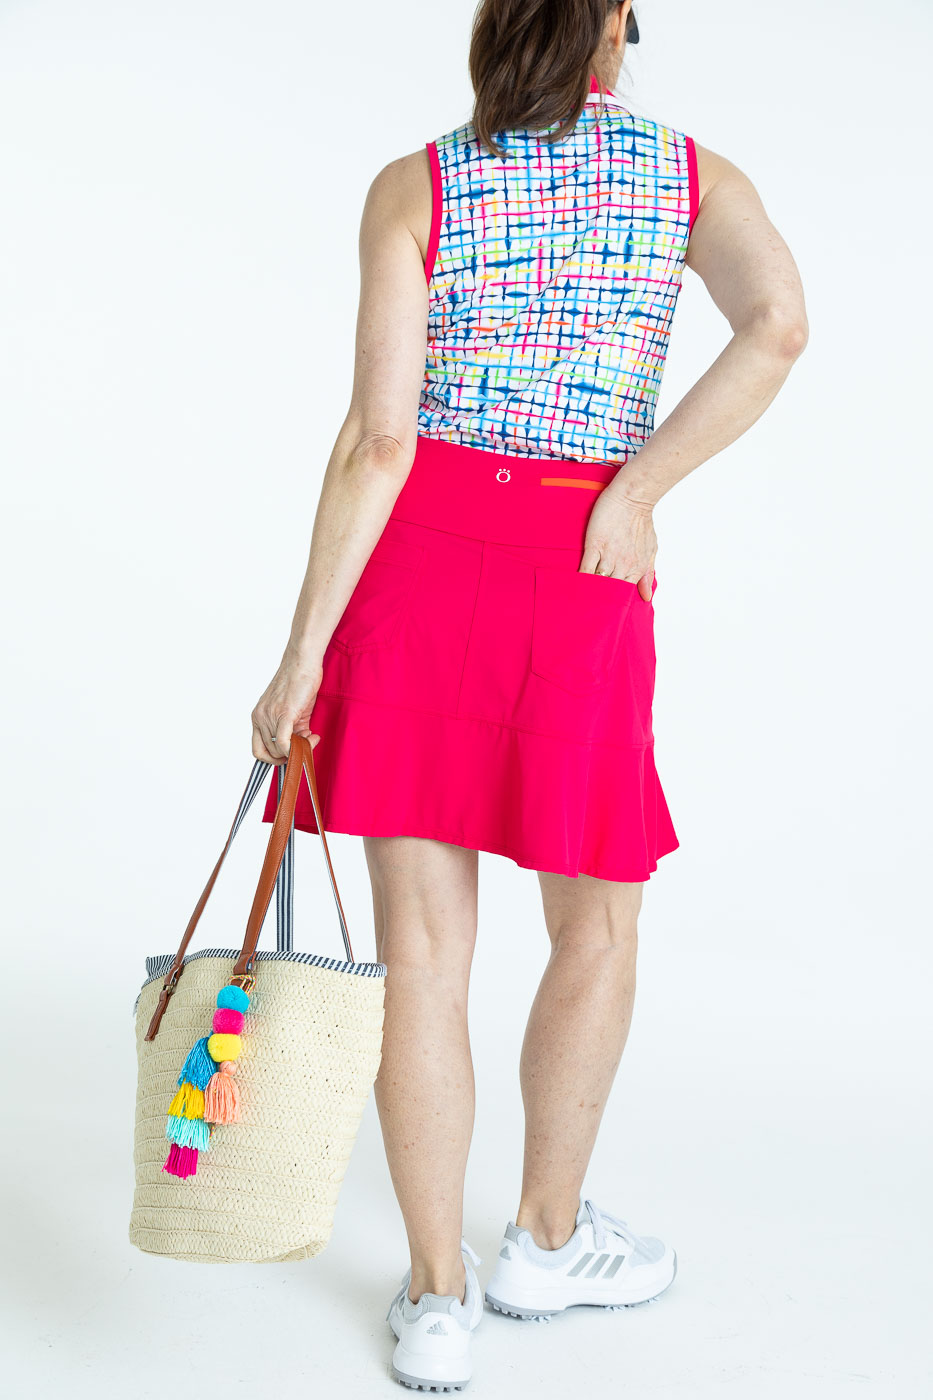 Back view of woman golfer wearing a blurred lines Shape Shifter sleeveless golf top and a raspberry red Fit and Flare Golf Skort holding a bag.